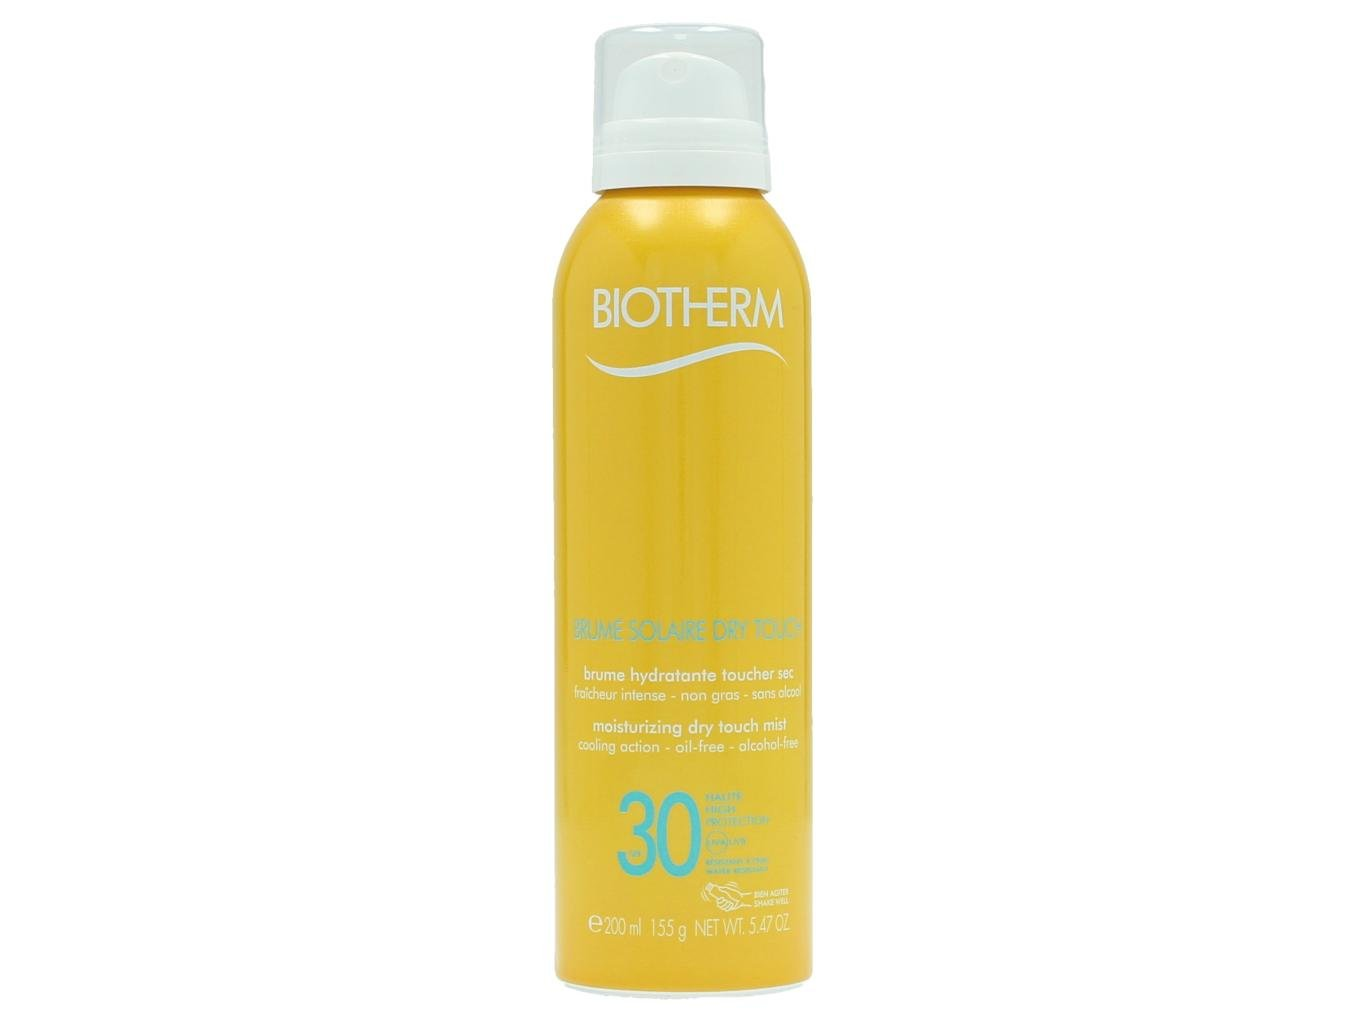 Biotherm – Bruma Solaire Dry Touch SPF 30